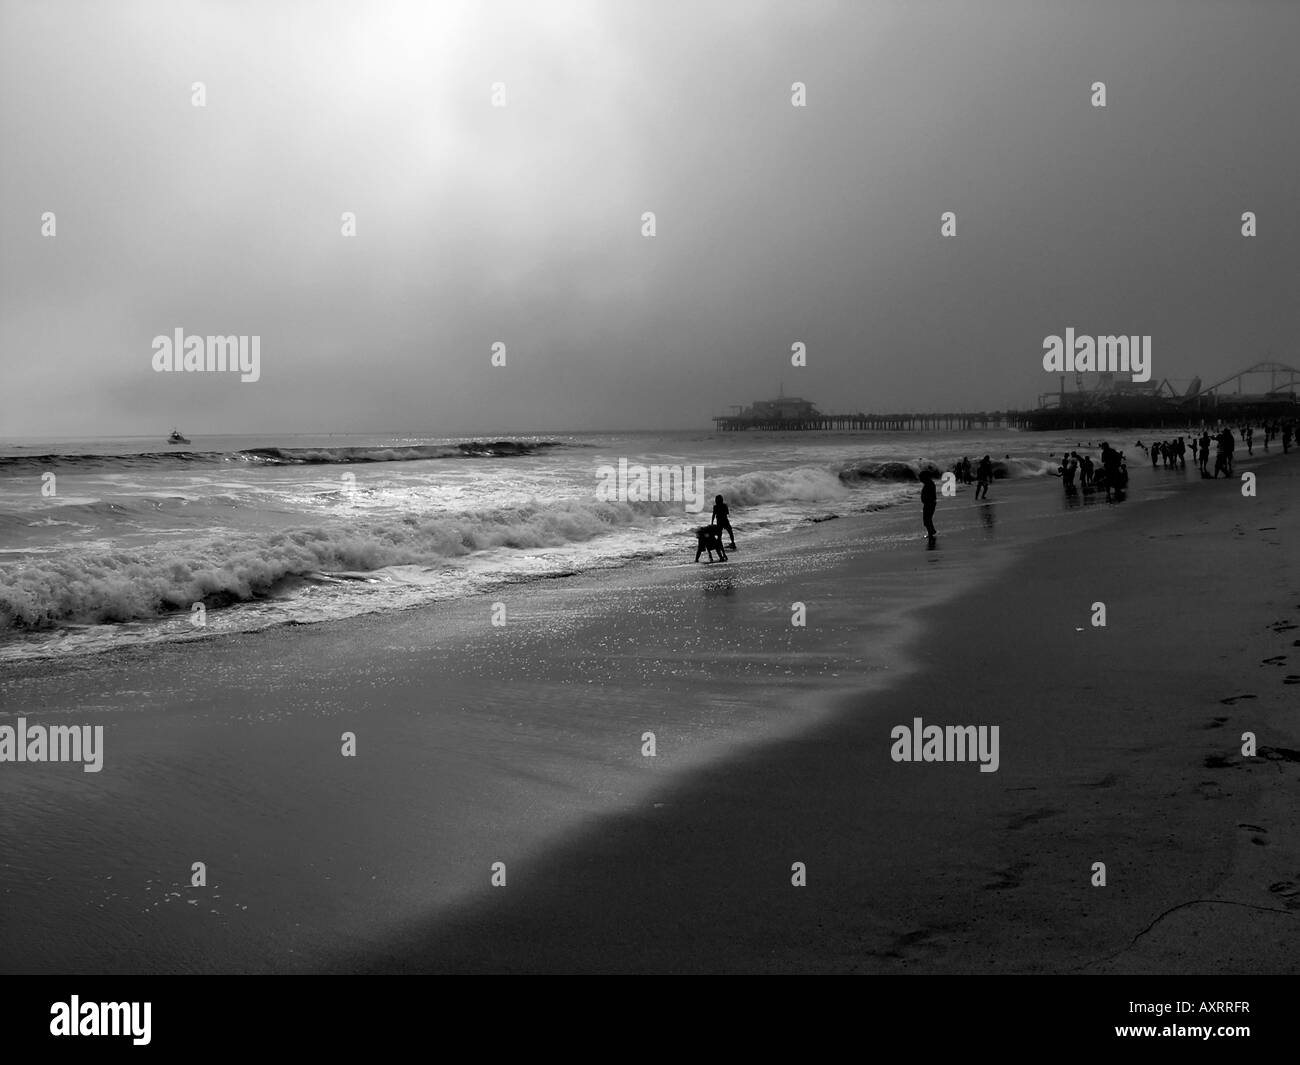 Beach near the Pier Santa Monica California USA people trying to enjoy and overcast day It is also known as marine - Stock Image